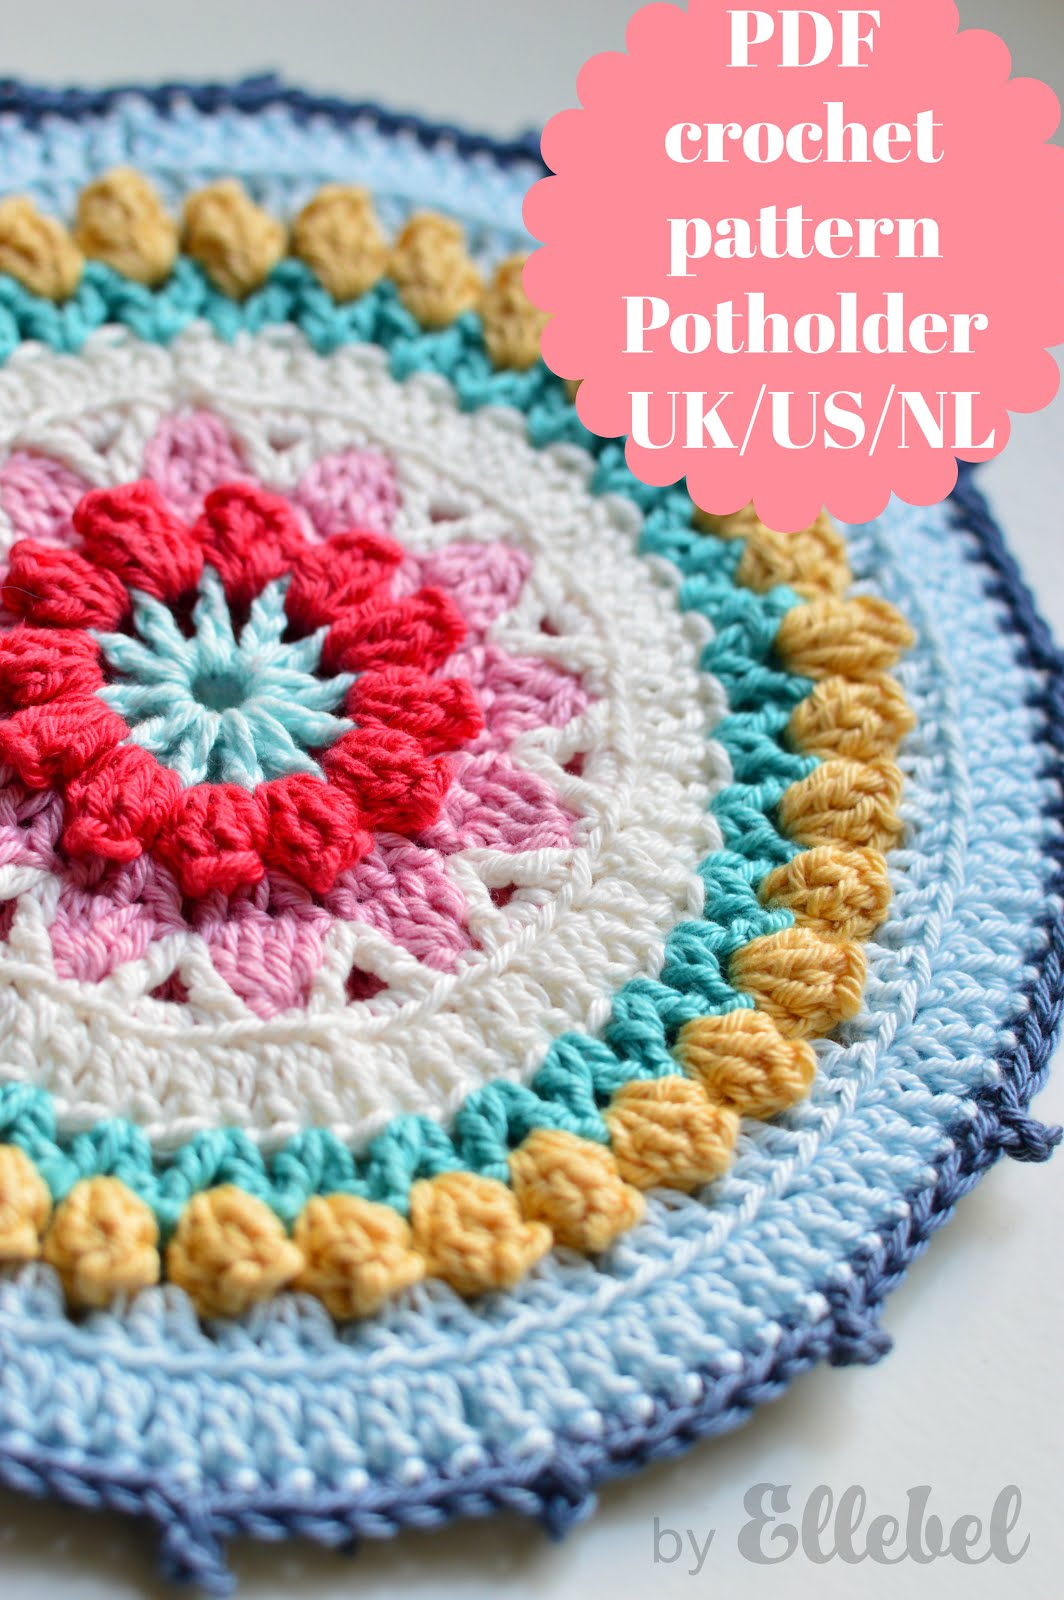 Patroon pannenlap/pattern potholder